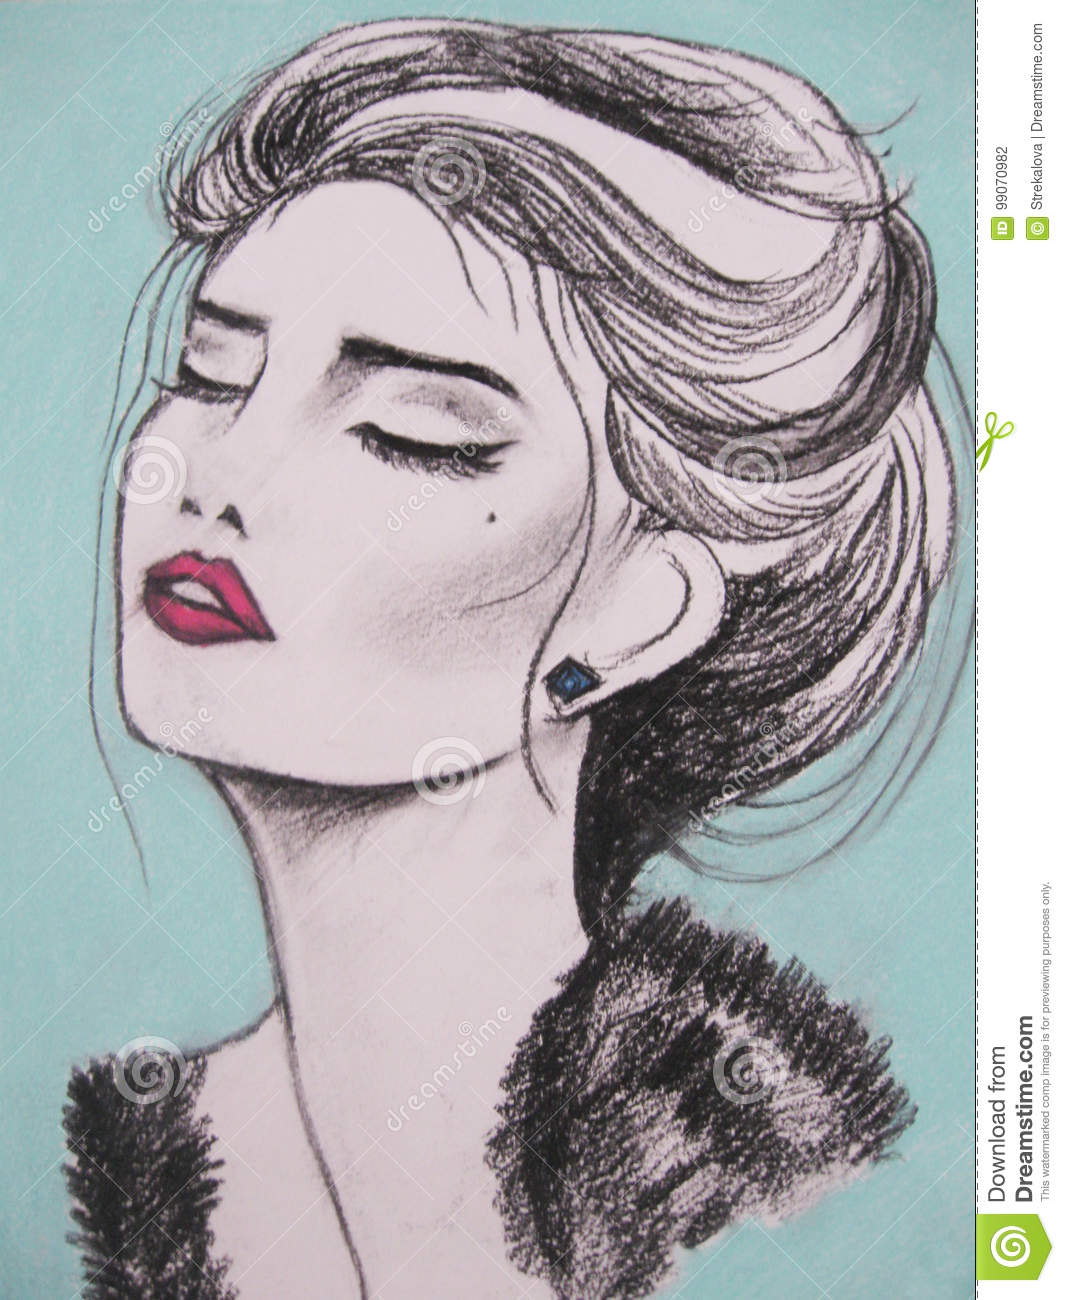 Woman face portrait abstract watercolor fashion drawing of a beautiful woman